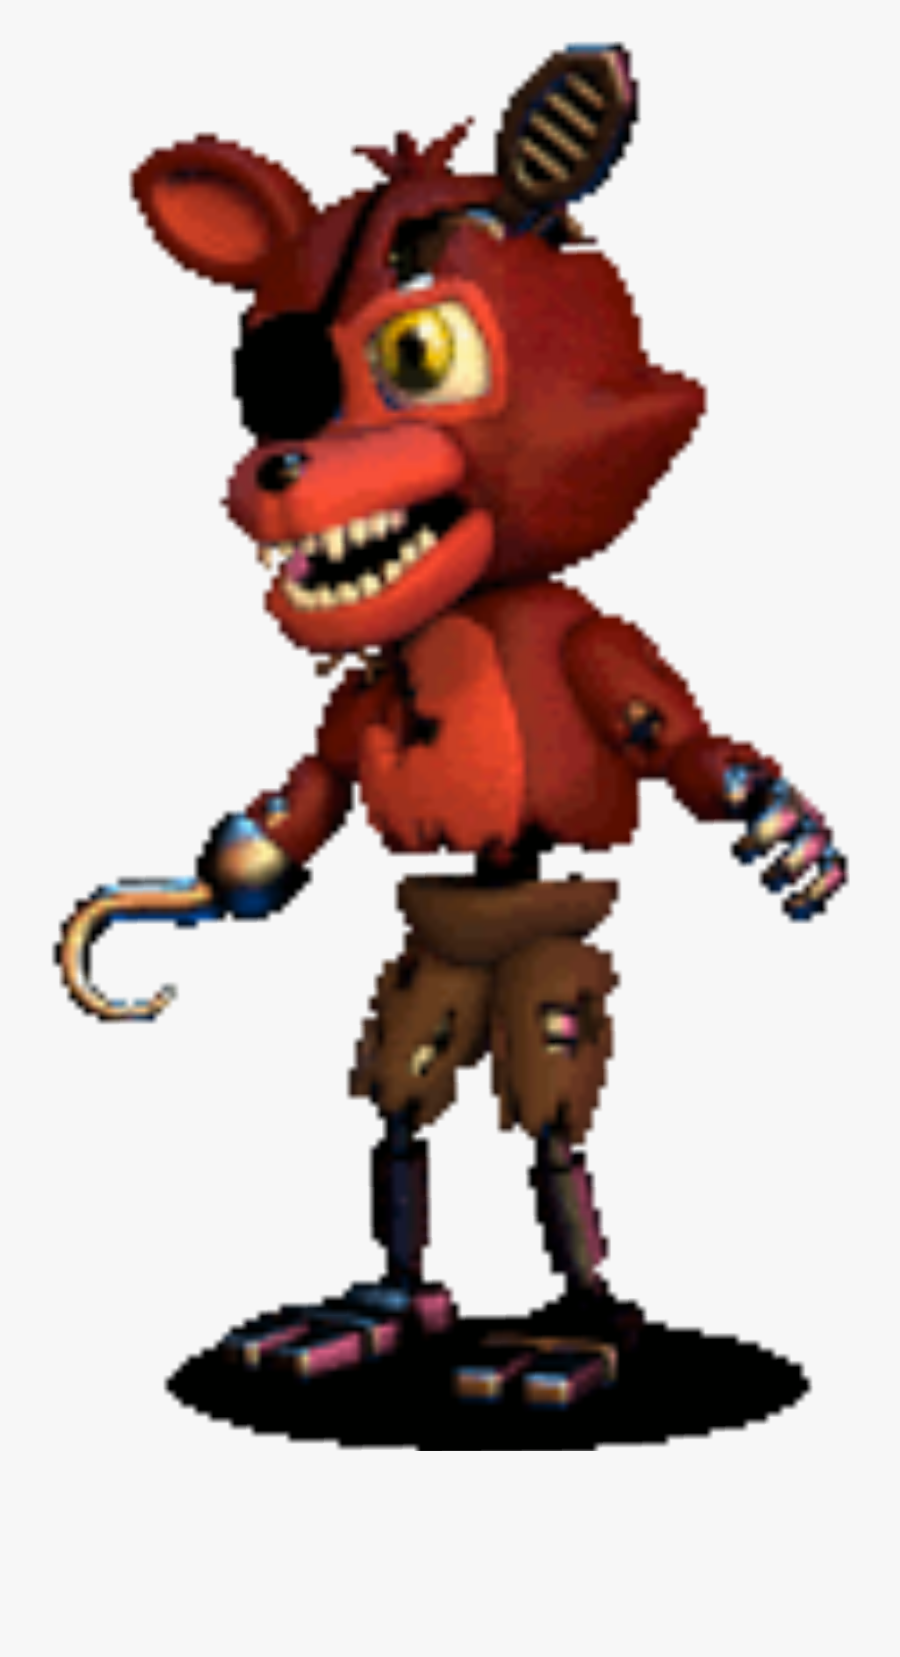 """Fnaf World Five Nights At Freddy""""s Gif Game Tenor - Fnaf Adventure Withered Foxy, Transparent Clipart"""